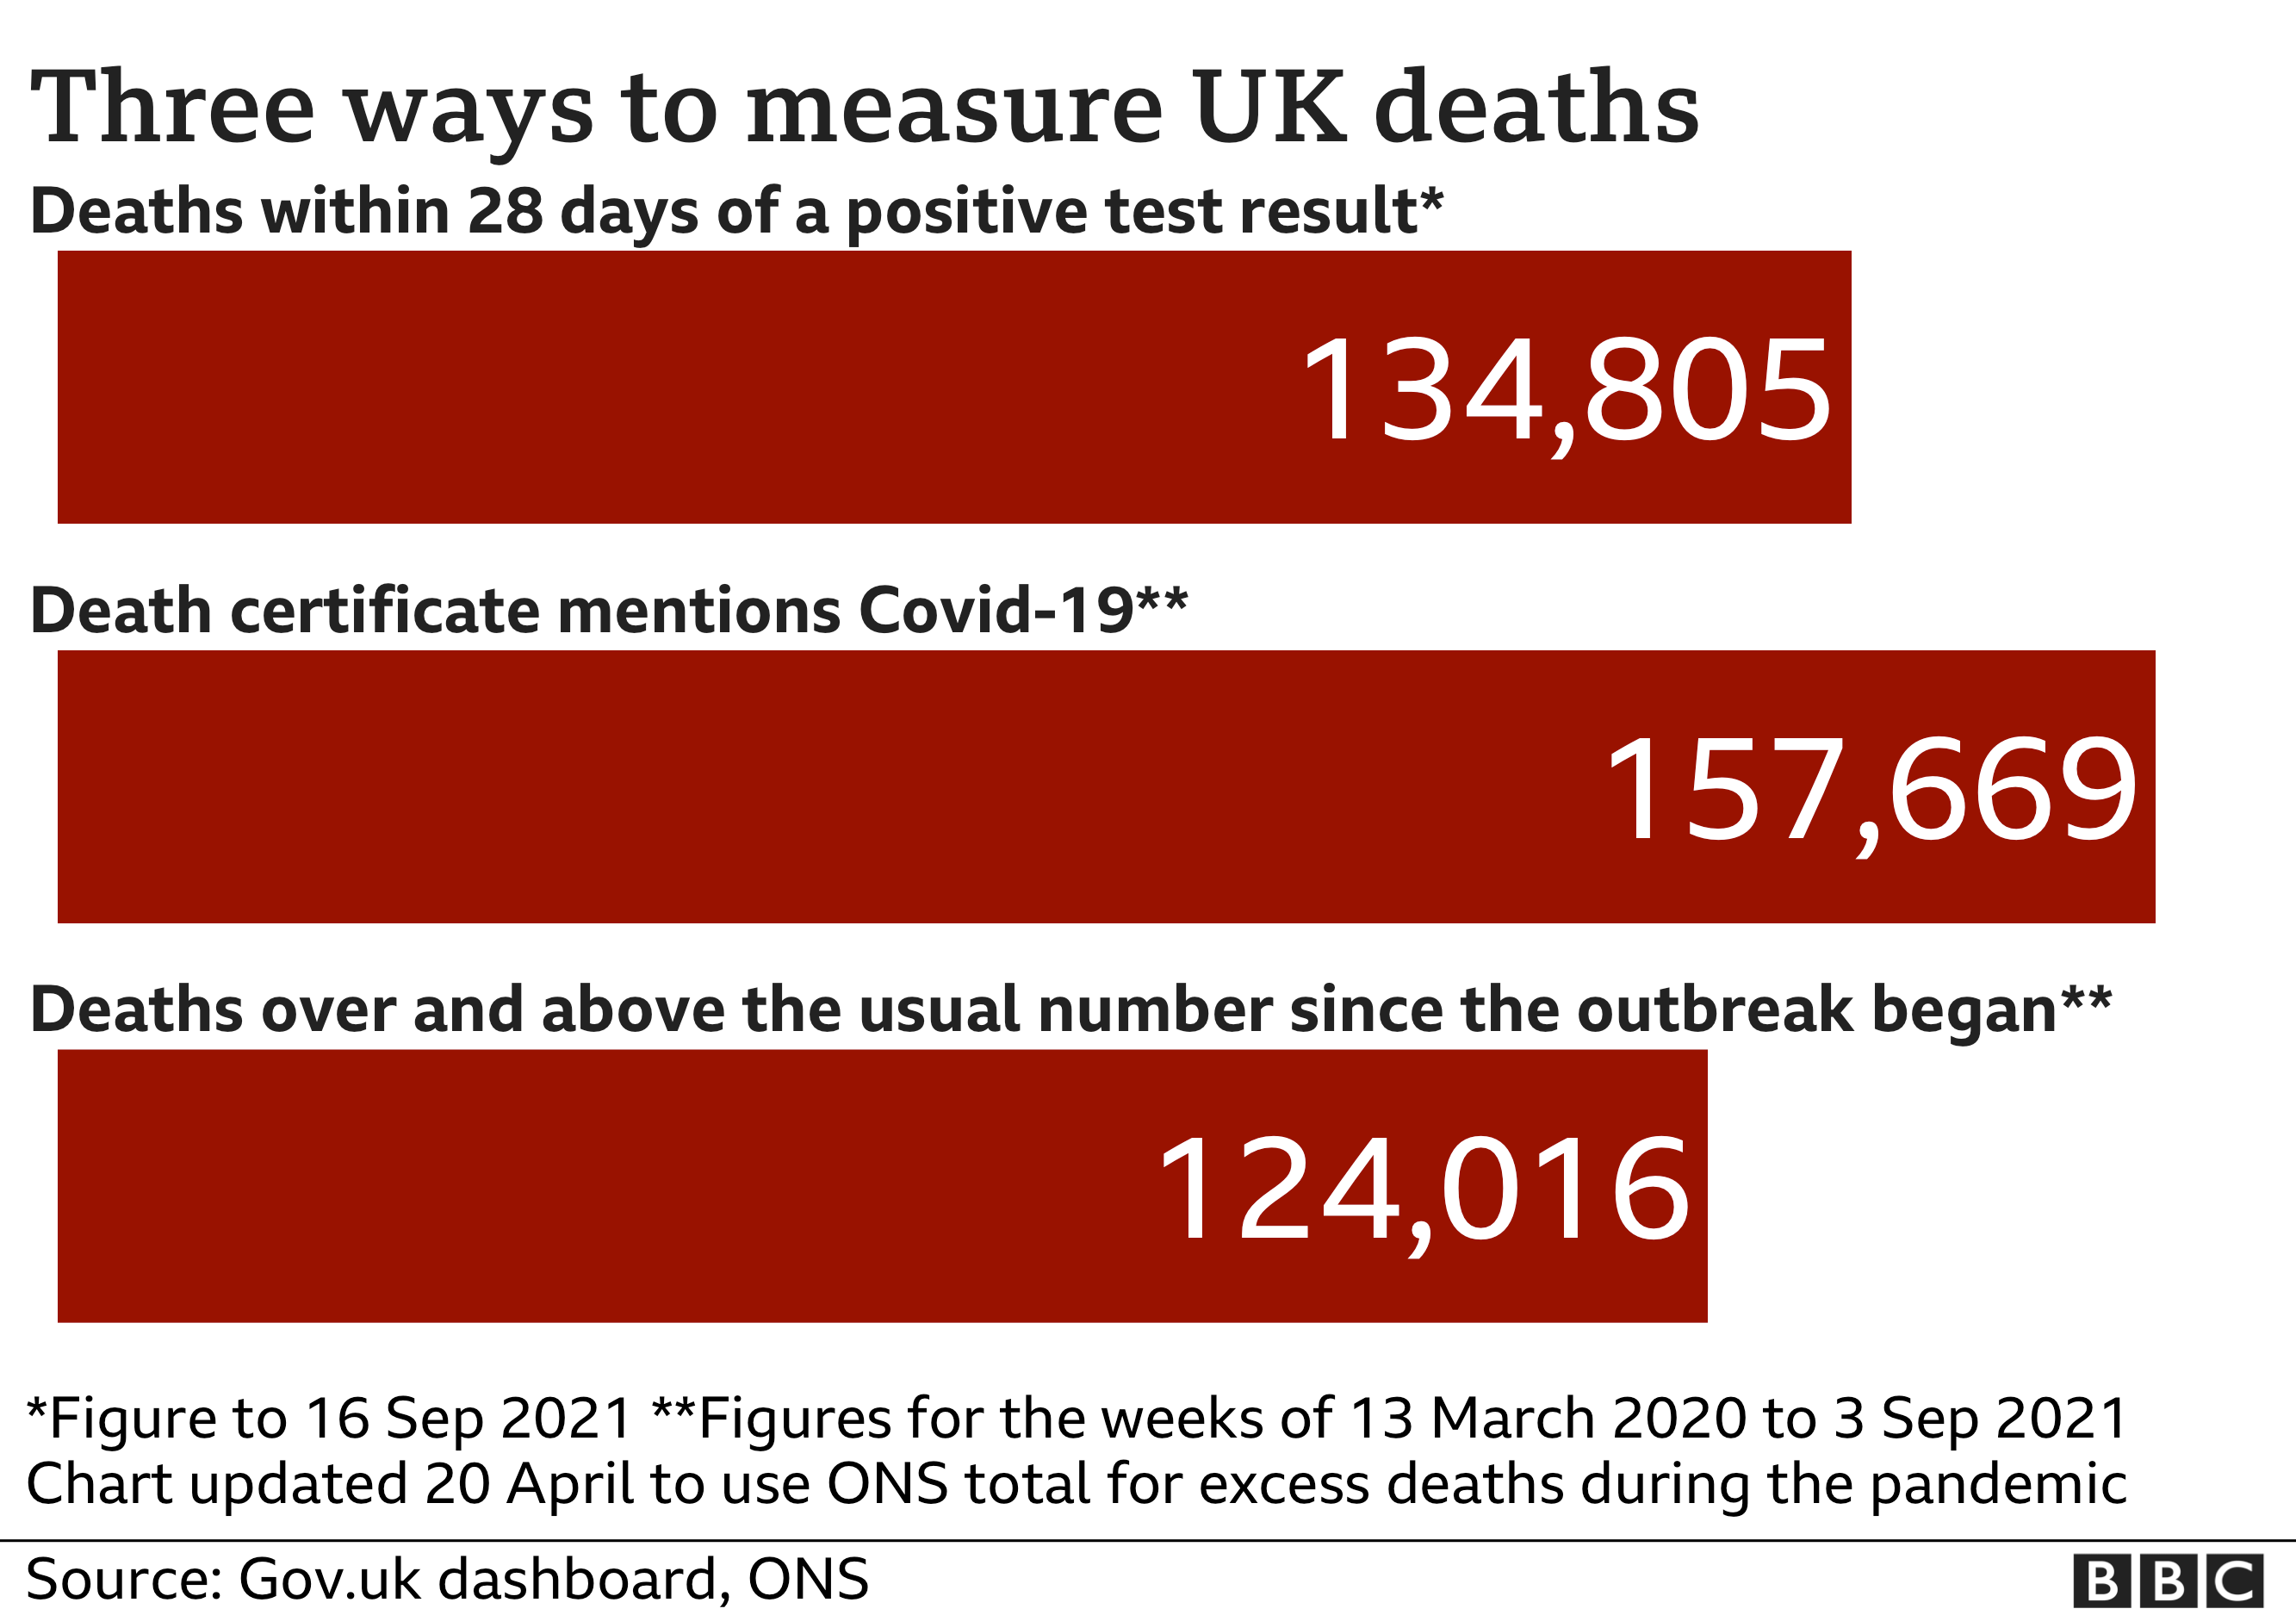 Chart showing the three ways of measuring deaths from Covid - the government figure of 134,805 includes all deaths within 28 days of a positive result; the ONS counts all death certificate mentions and that figure is now 157,669; the excess death figures is the number of deaths over and above the usual total and that figure is now 124,016